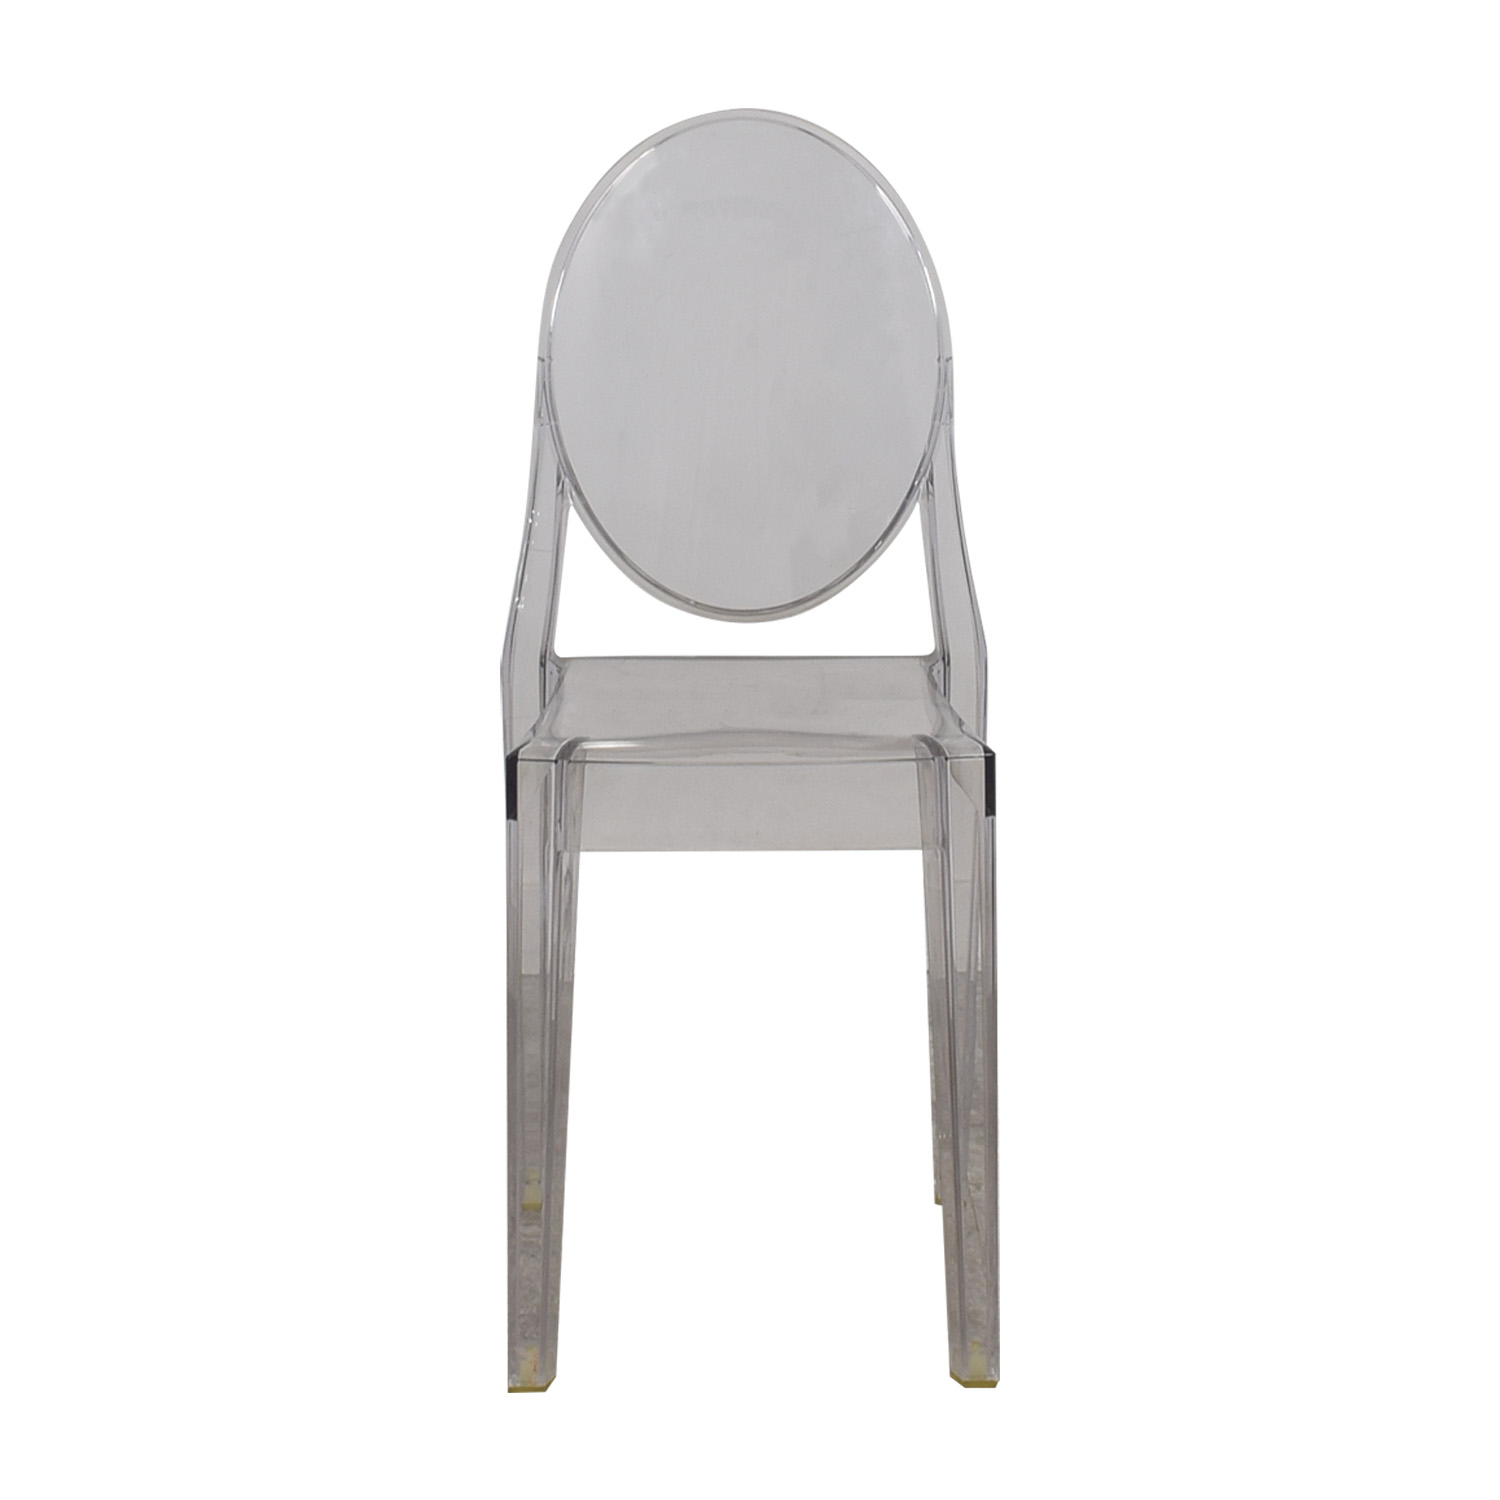 Kartel Kartel Ghost Chair Dining Chairs